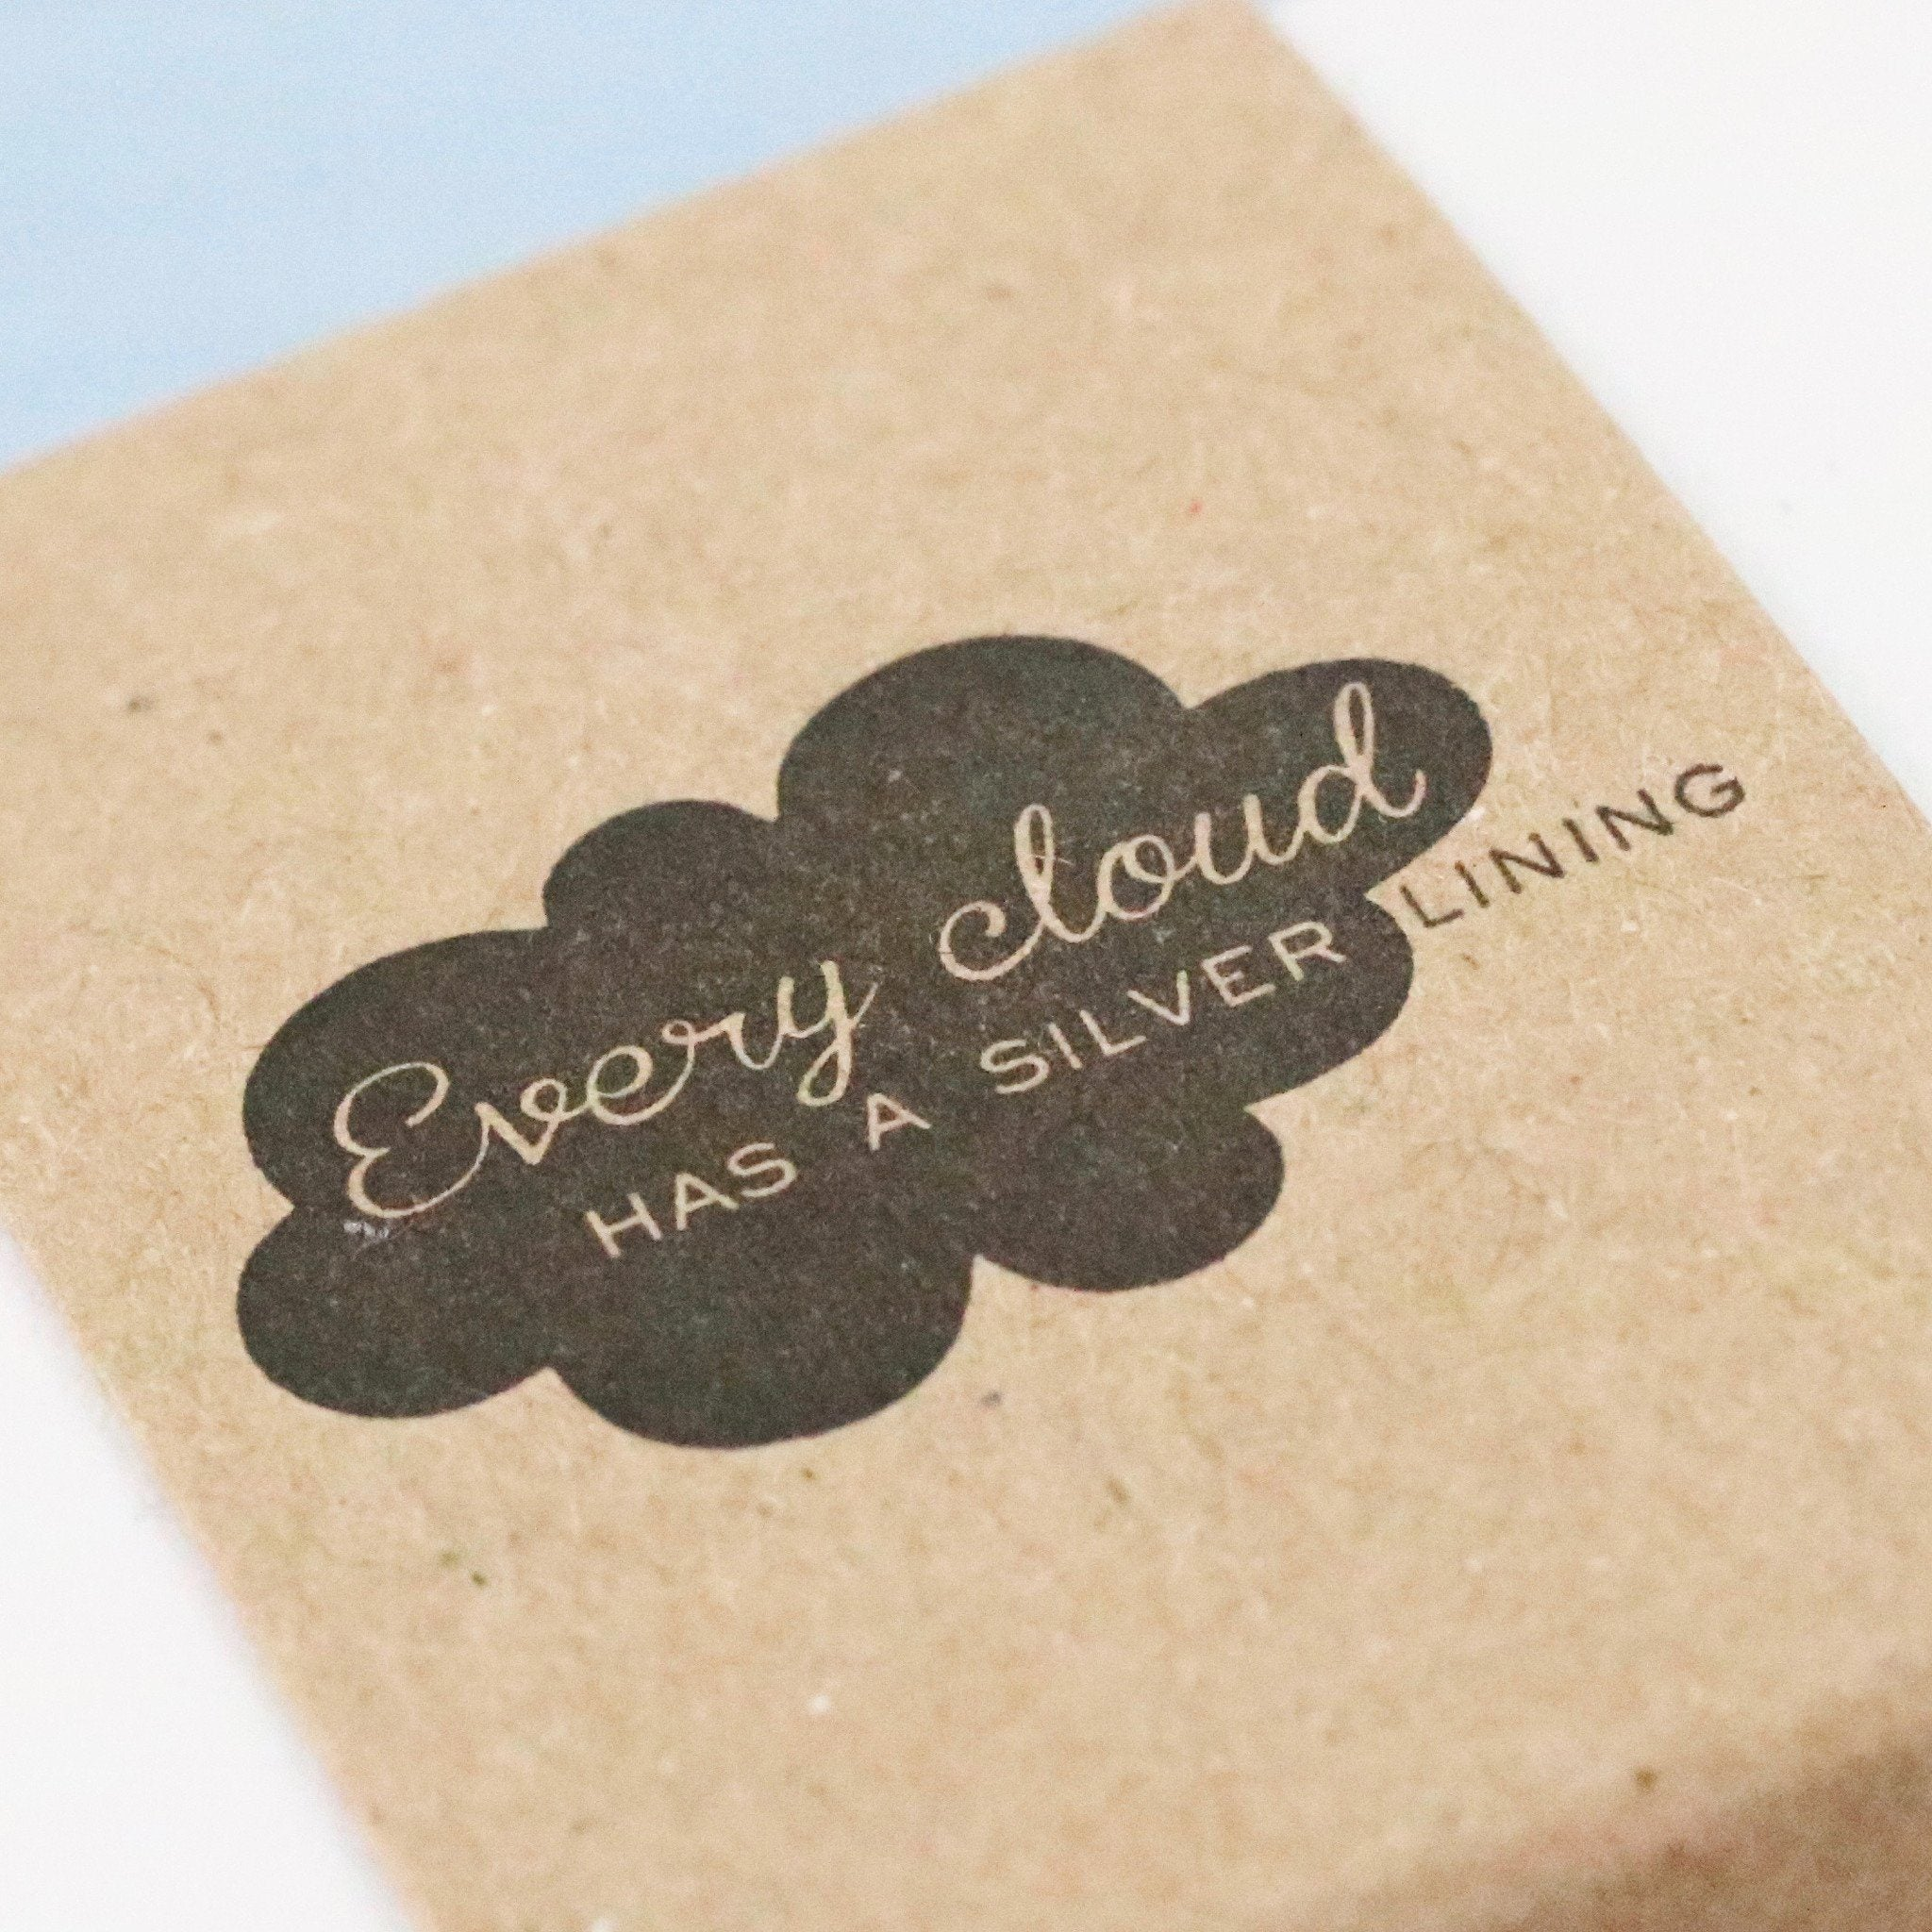 Every Cloud has a silver lining gift box